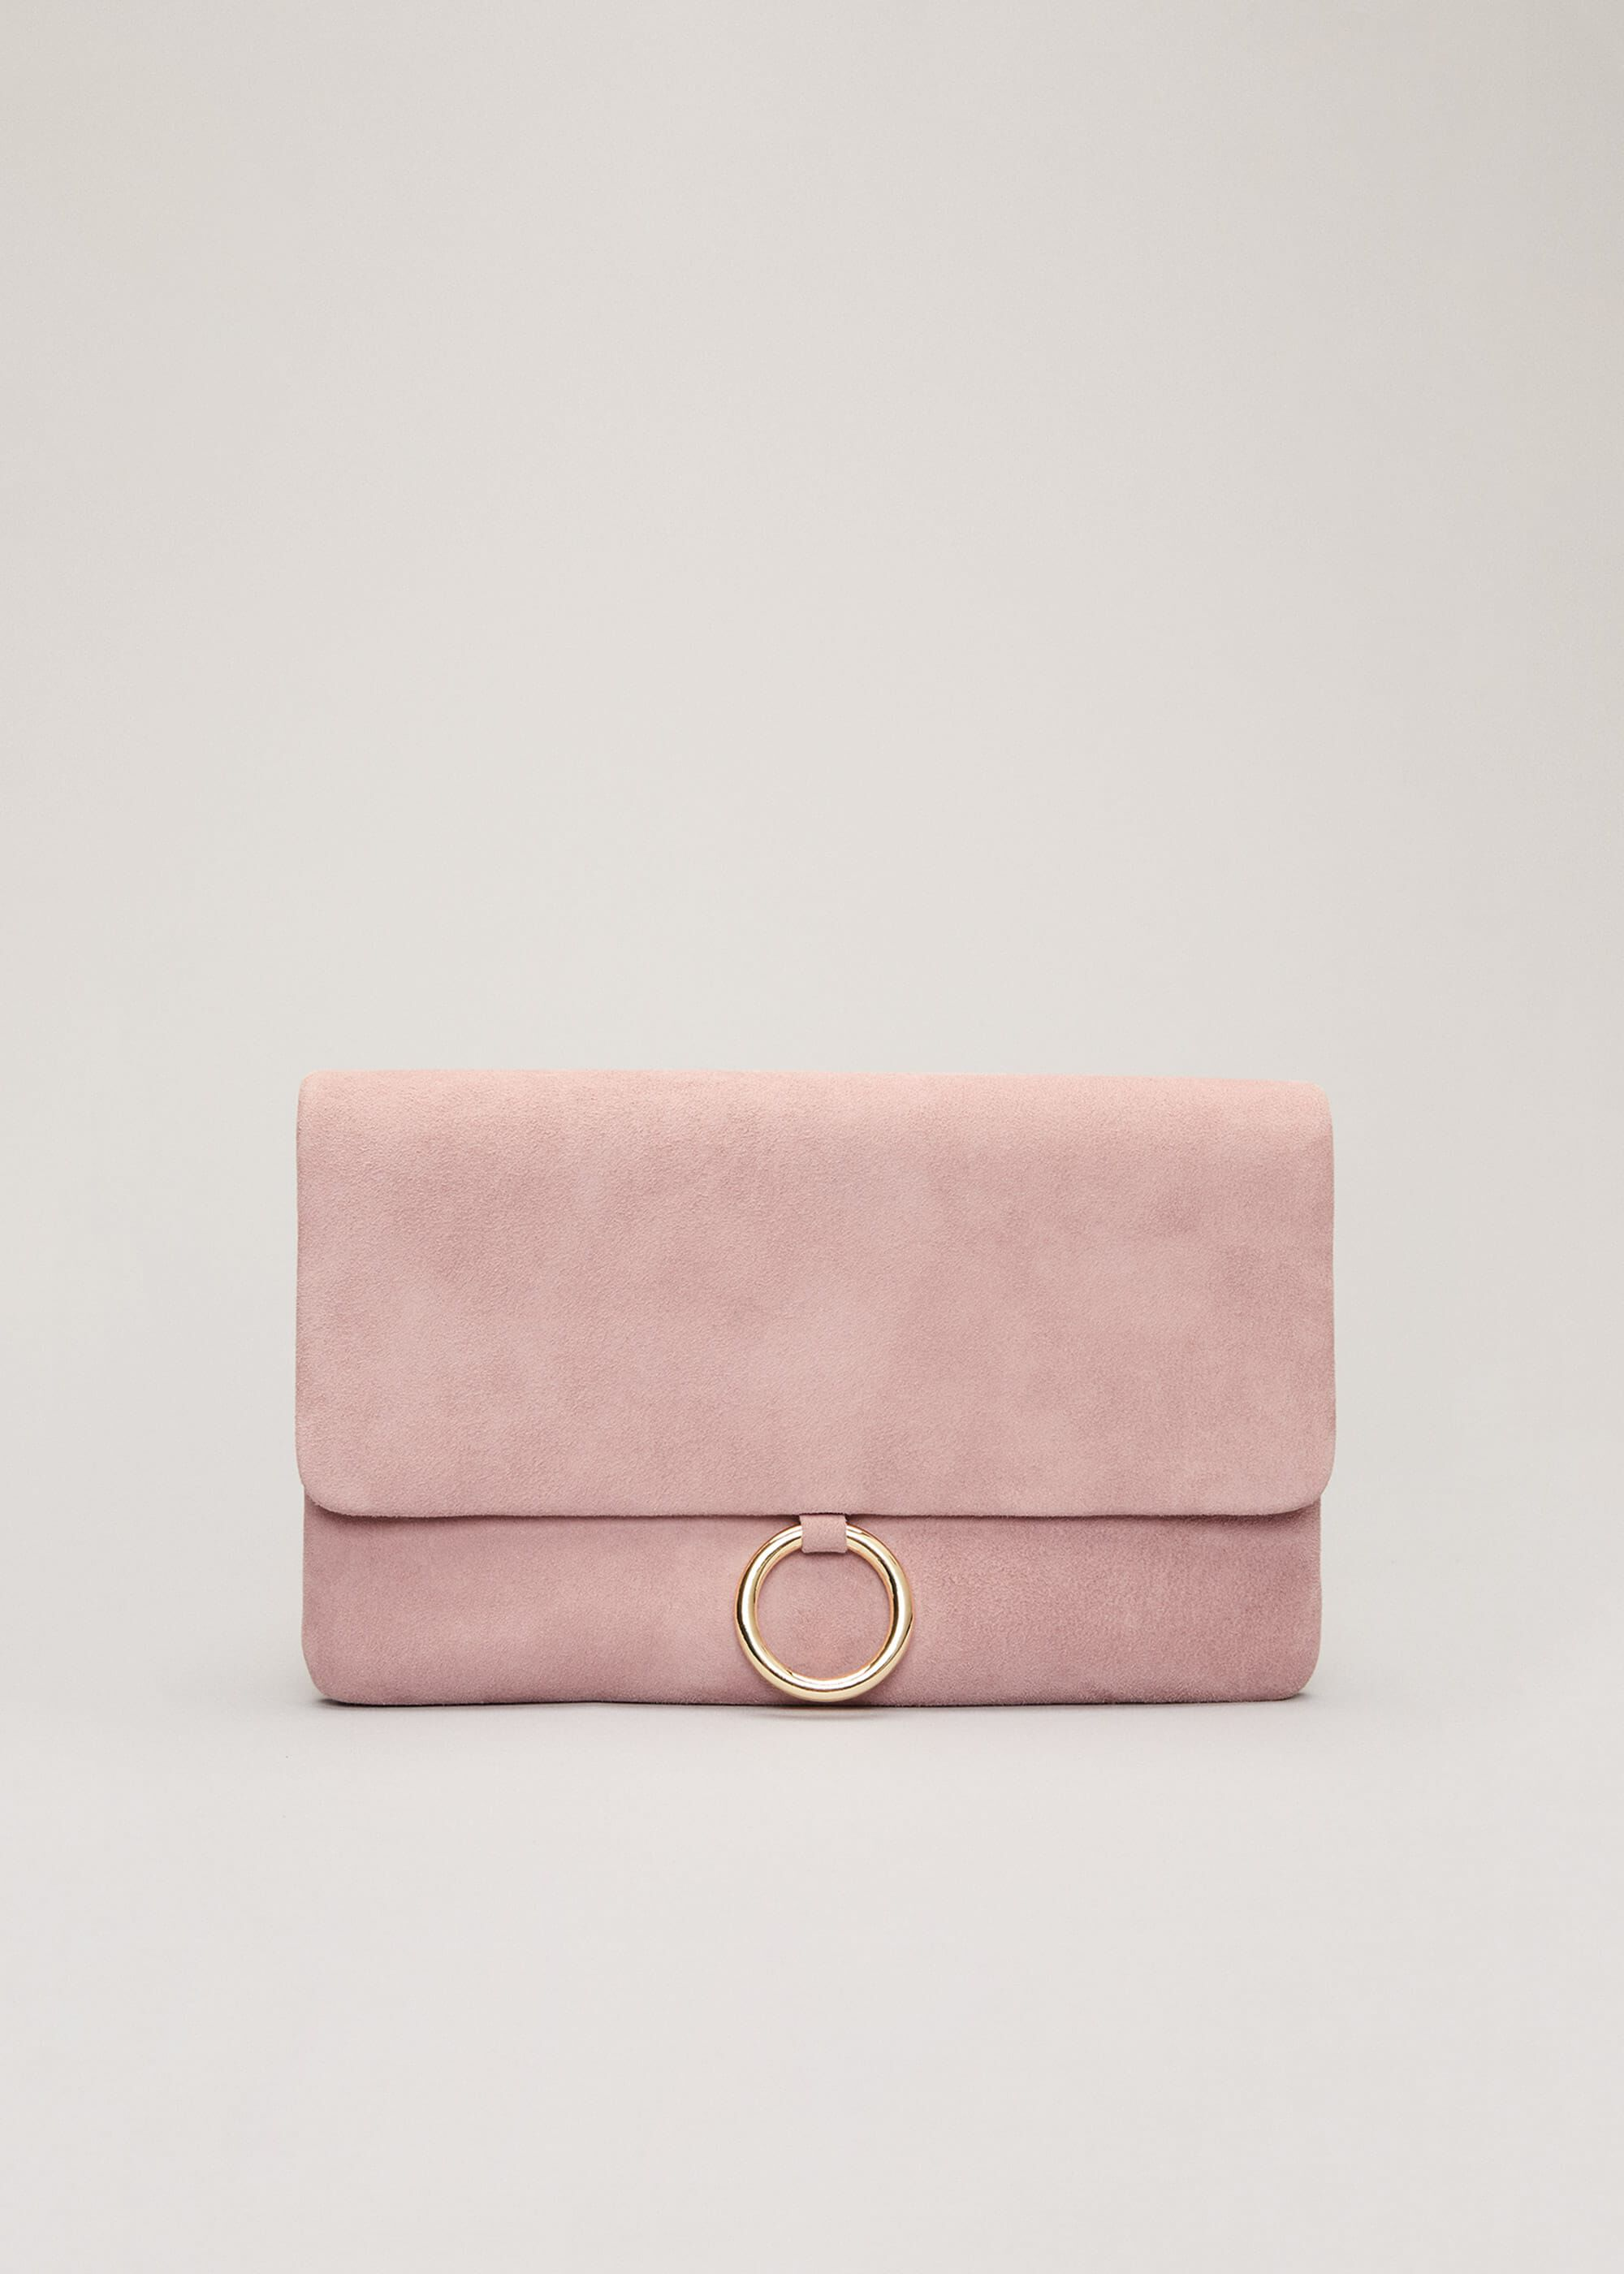 Phase Eight Giselle Clutch Bag, Pink, Bag